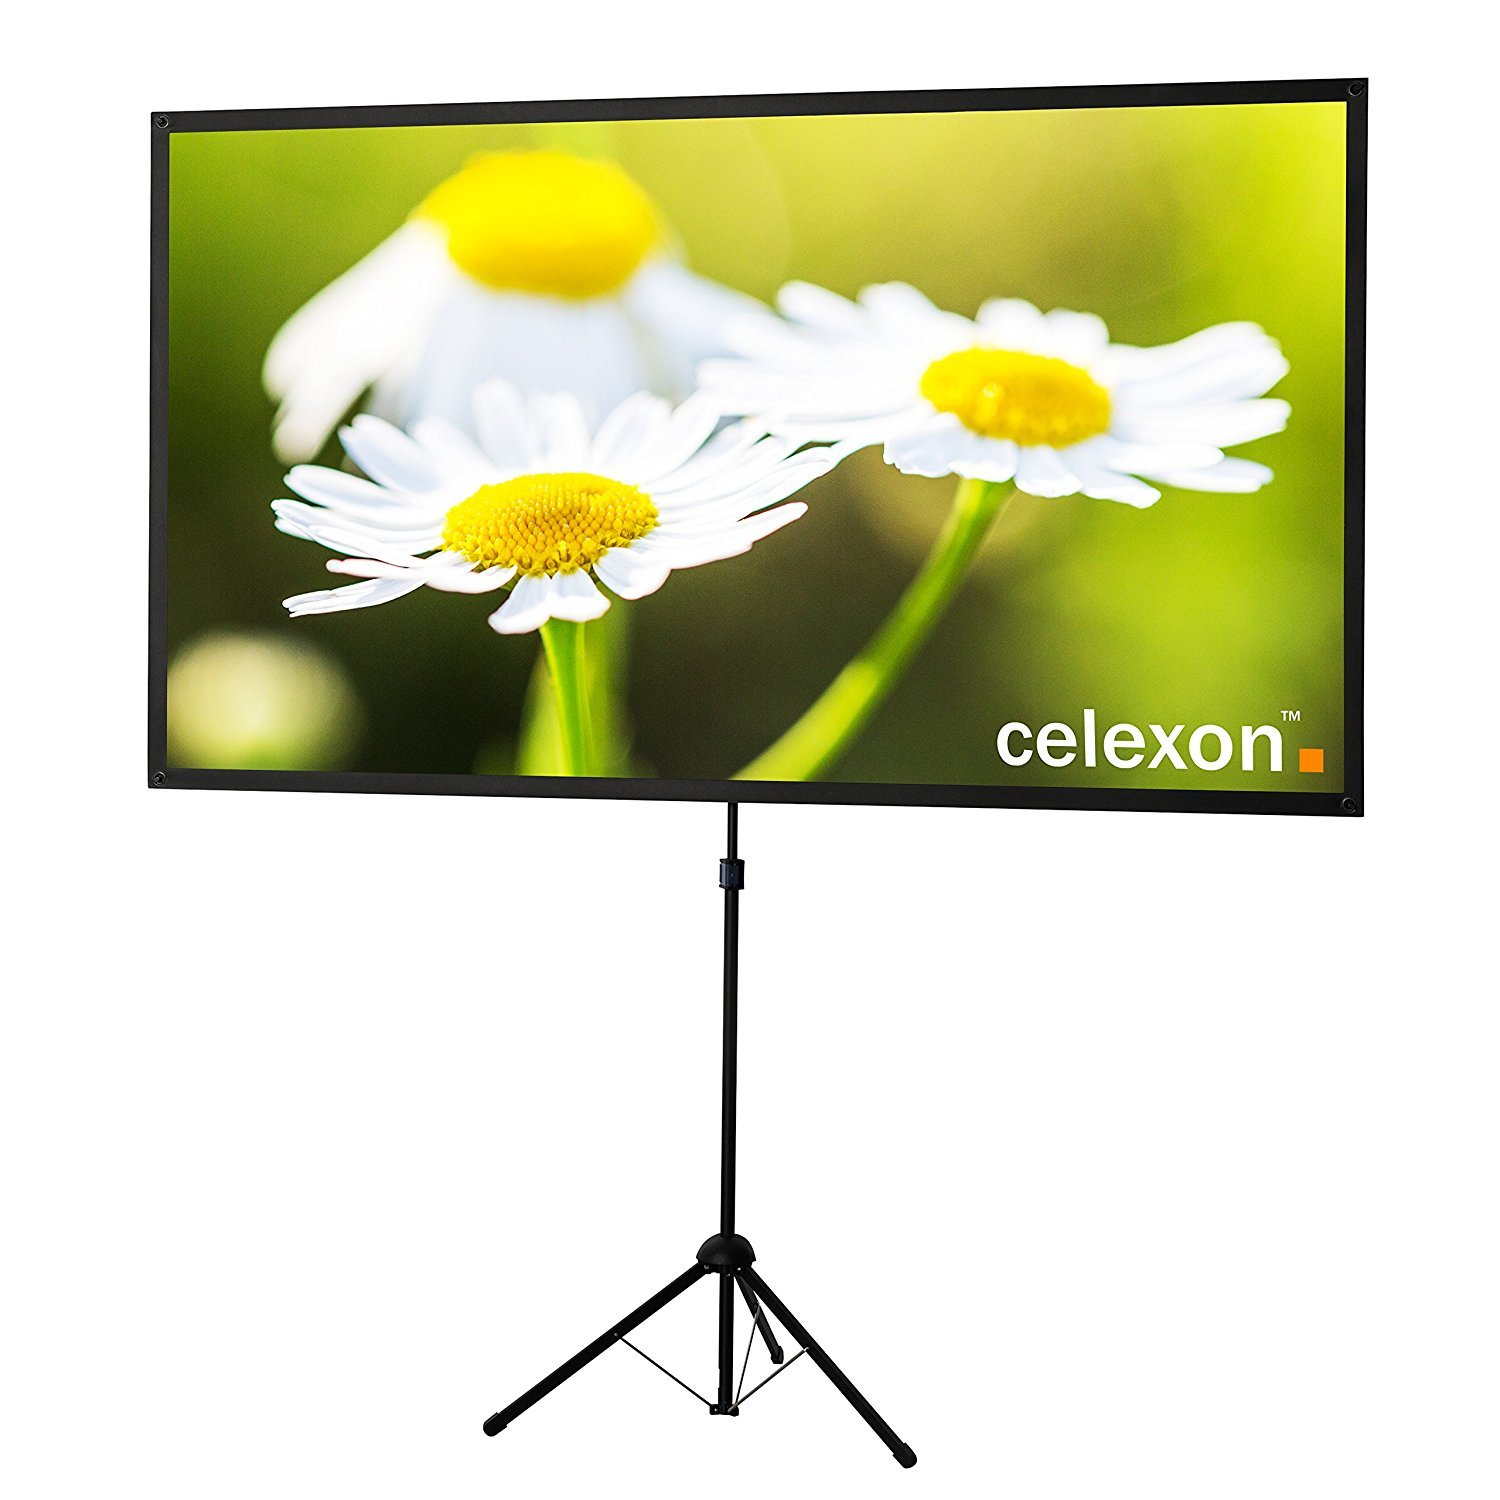 celexon 90'' Tripod Projector Screen Ultra Lightweight | 16:9 format | Ultra Portable | 11 lbs weight | Mobile presentation and cinema solution | Projector Screen Size: 78'' x 44'' by Celexon